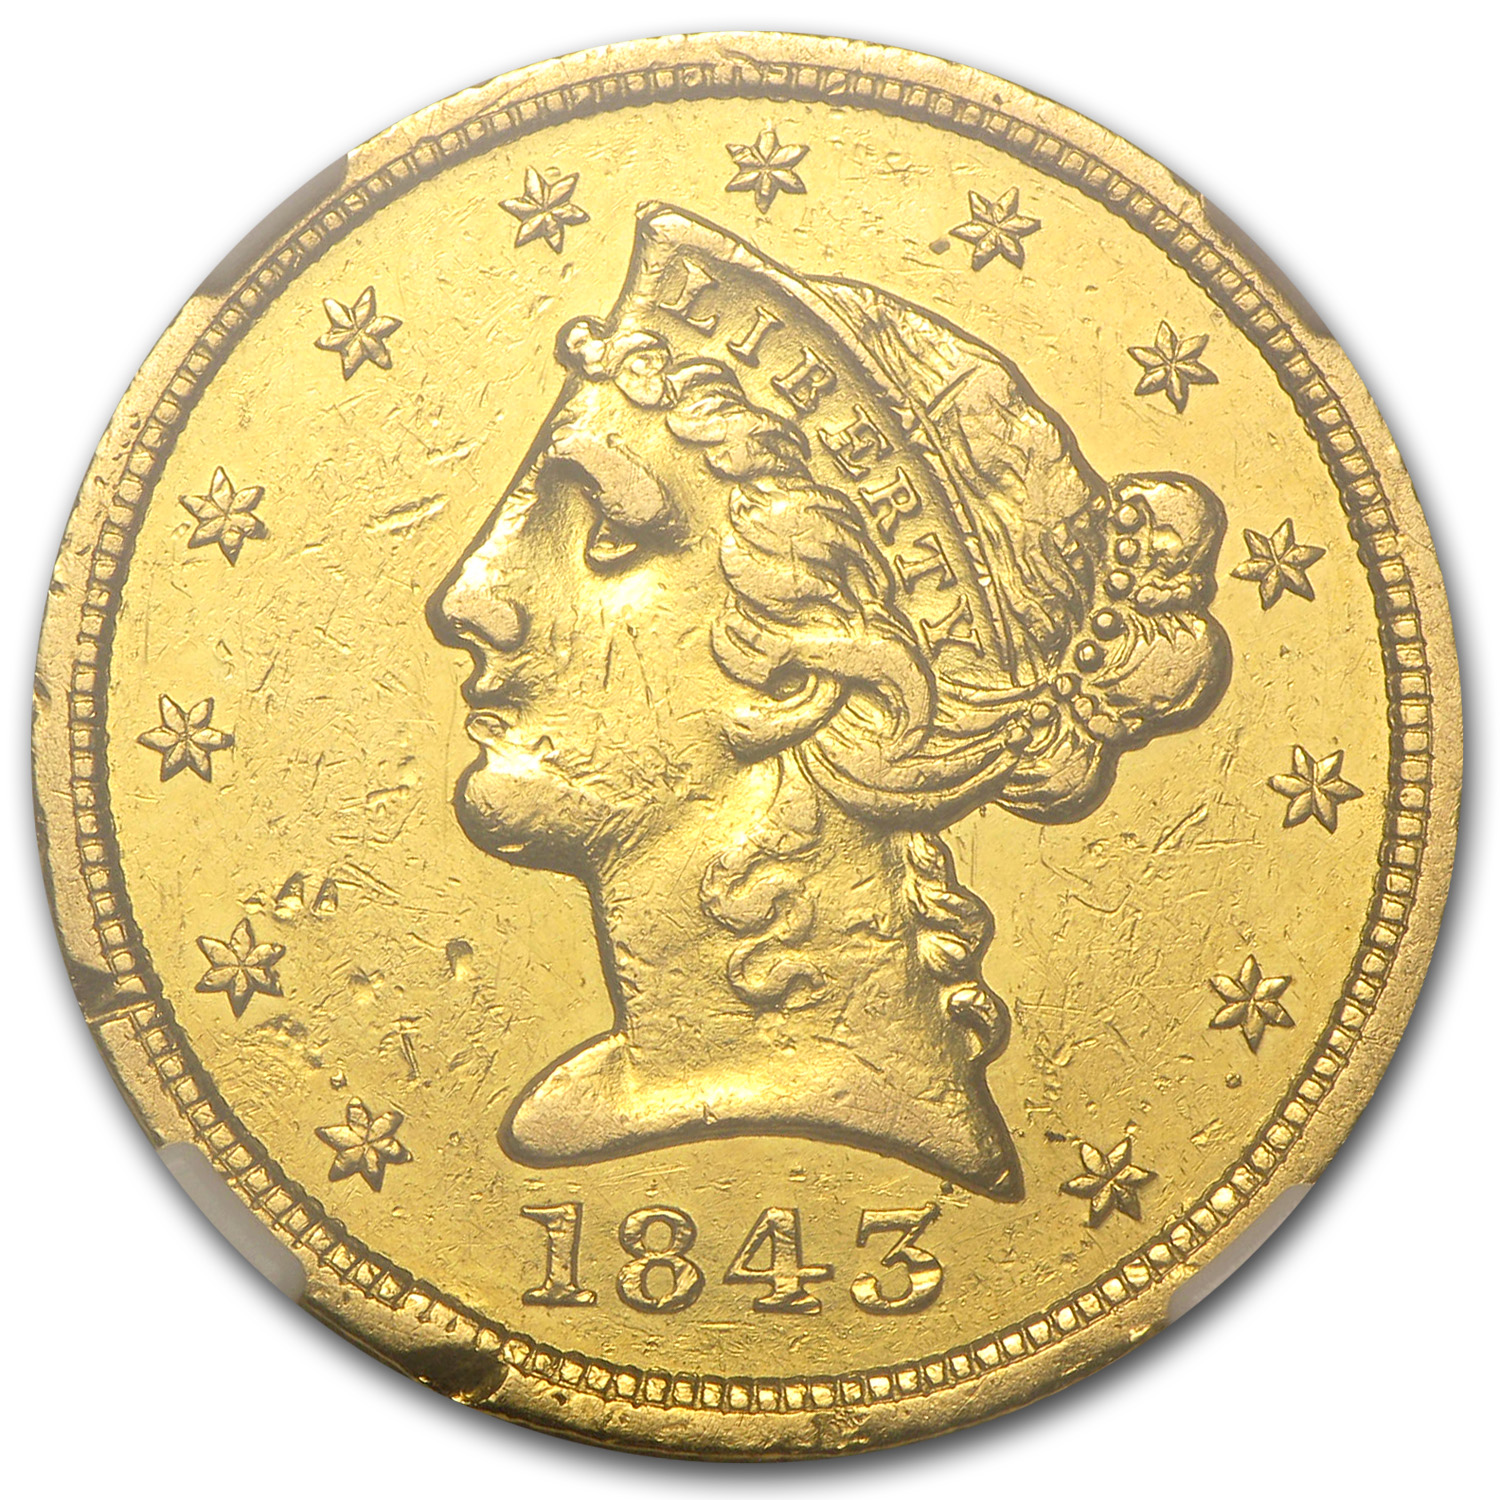 1843-D $5 Liberty Gold Half Eagle - AU Details (Cleaned) - NGC